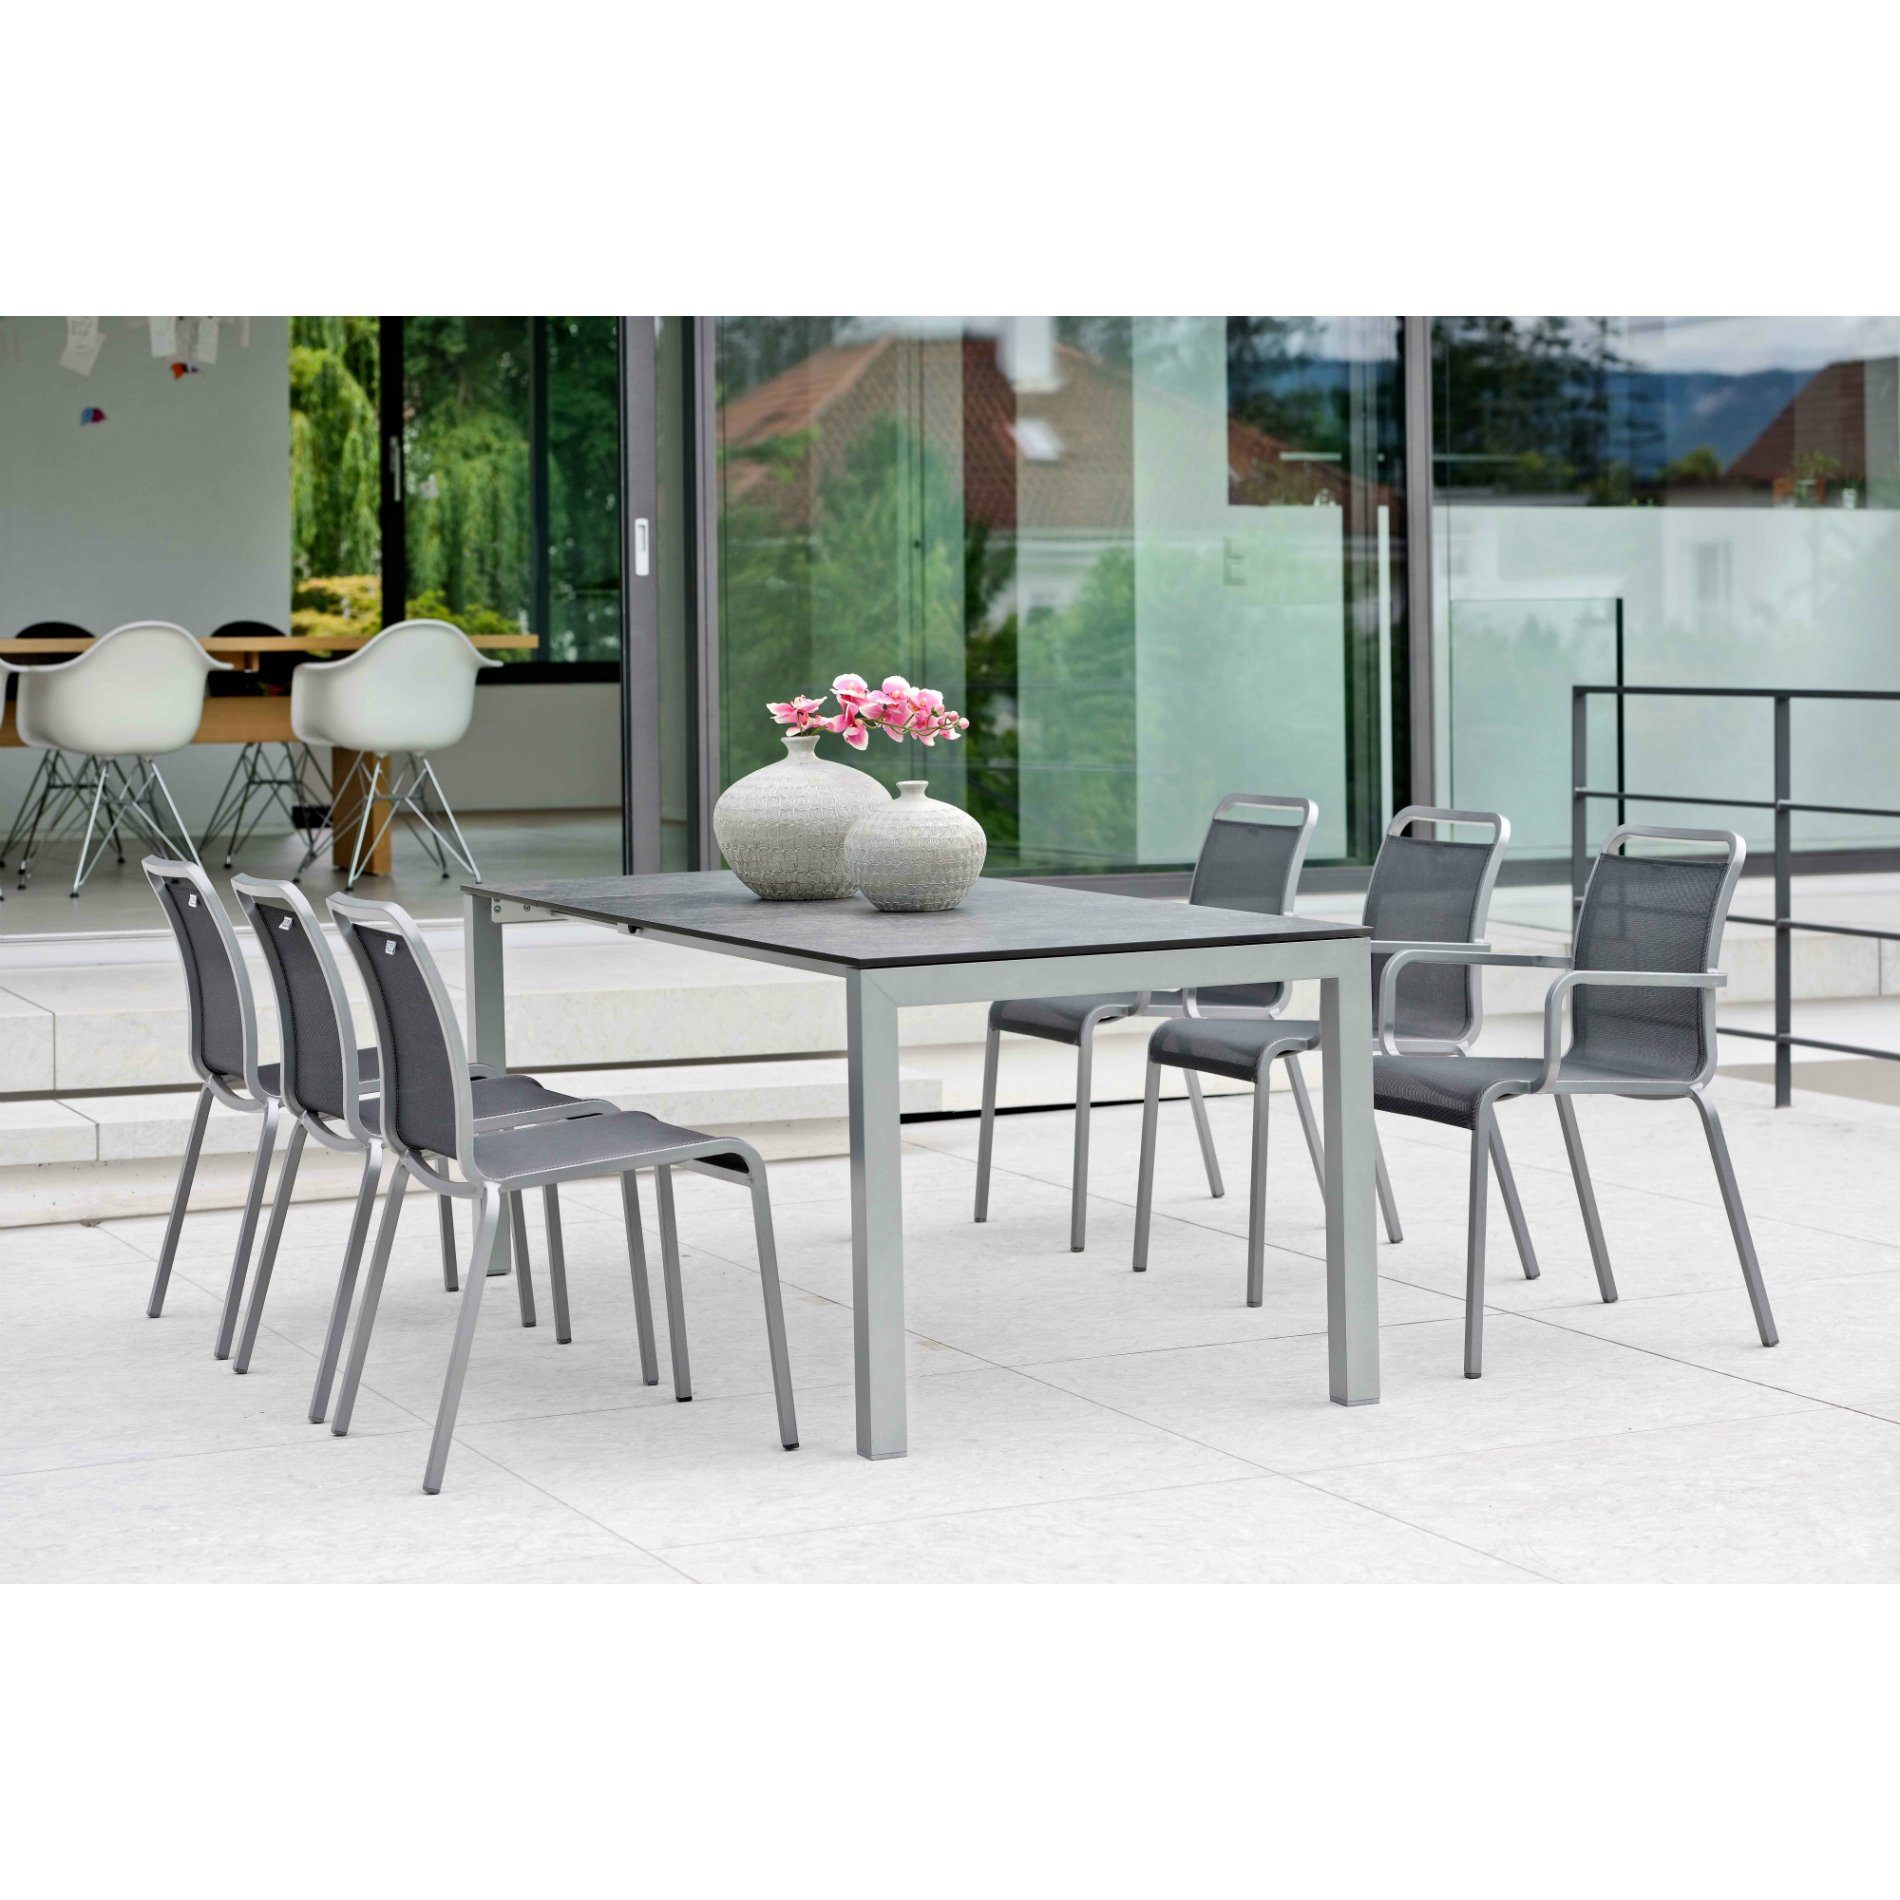 stern gartenm bel set mit stuhl oskar und ausziehtisch aluminium hpl. Black Bedroom Furniture Sets. Home Design Ideas